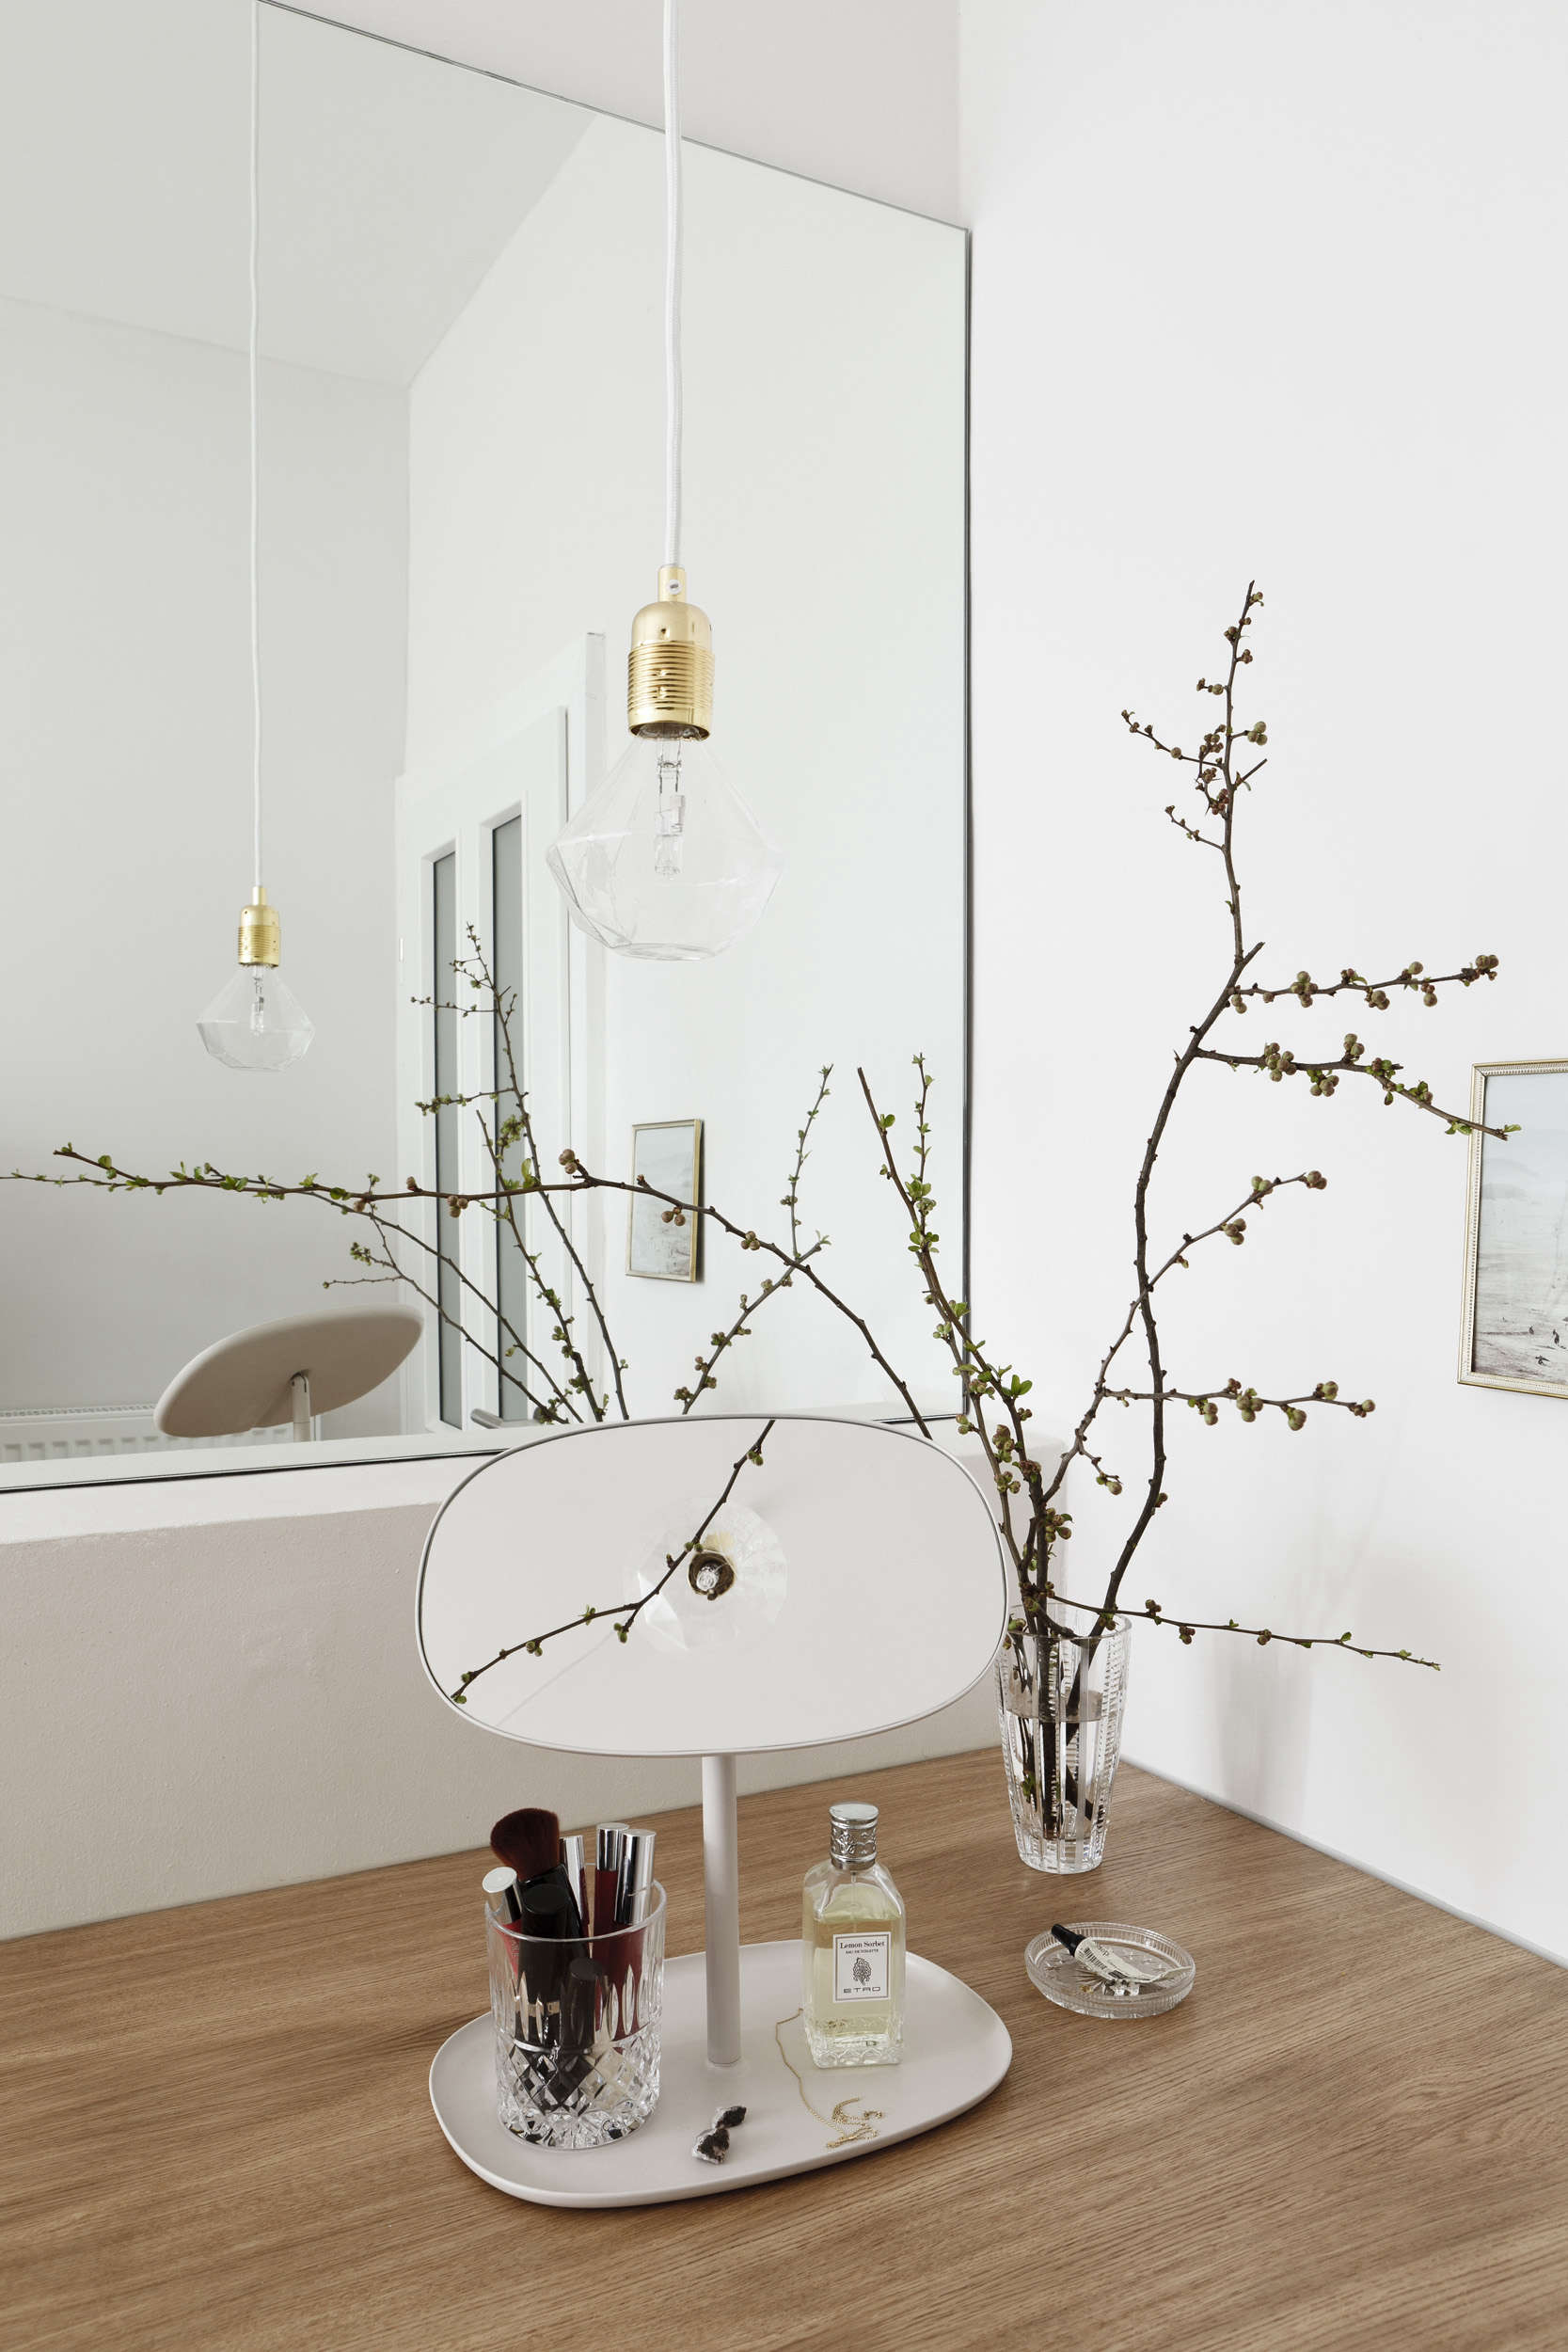 Bathroom details in a luxe-minimalist apartment remodel by Studio Oink in Mainz, Germany | Remodelista